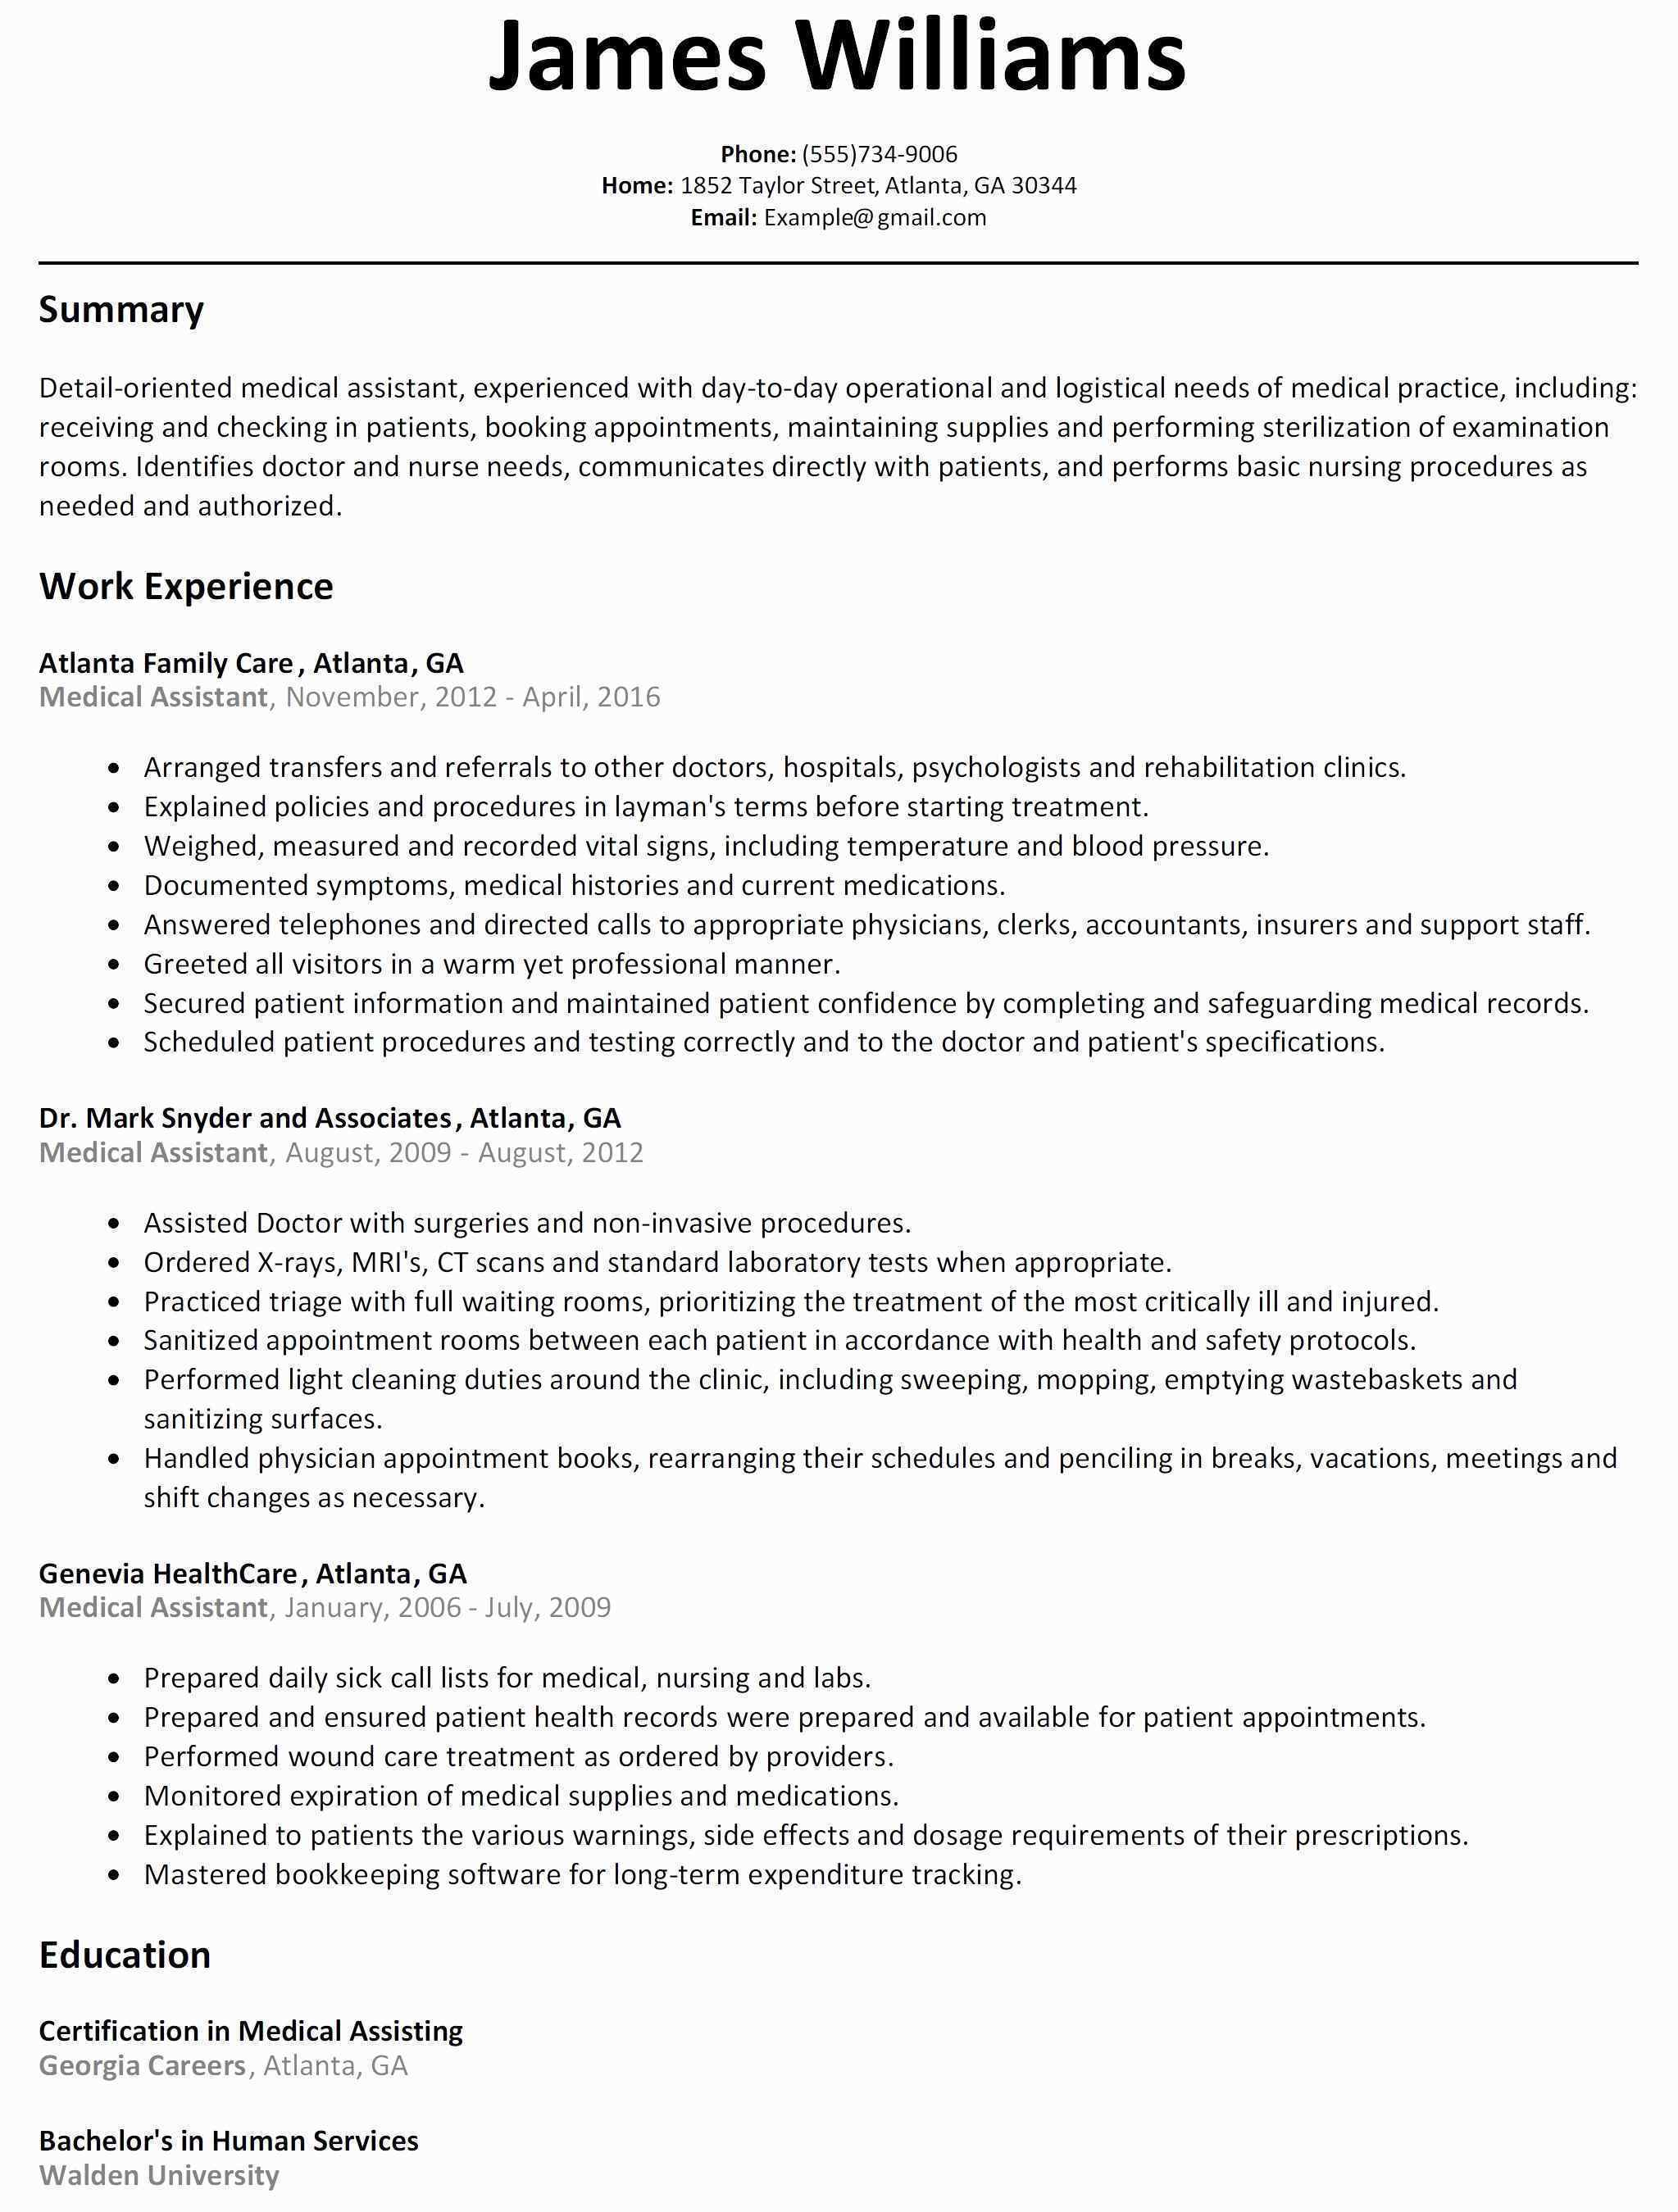 Summary for Resume with No Experience - Sample Resume Teenager No Experience Inspirational Luxury Resume